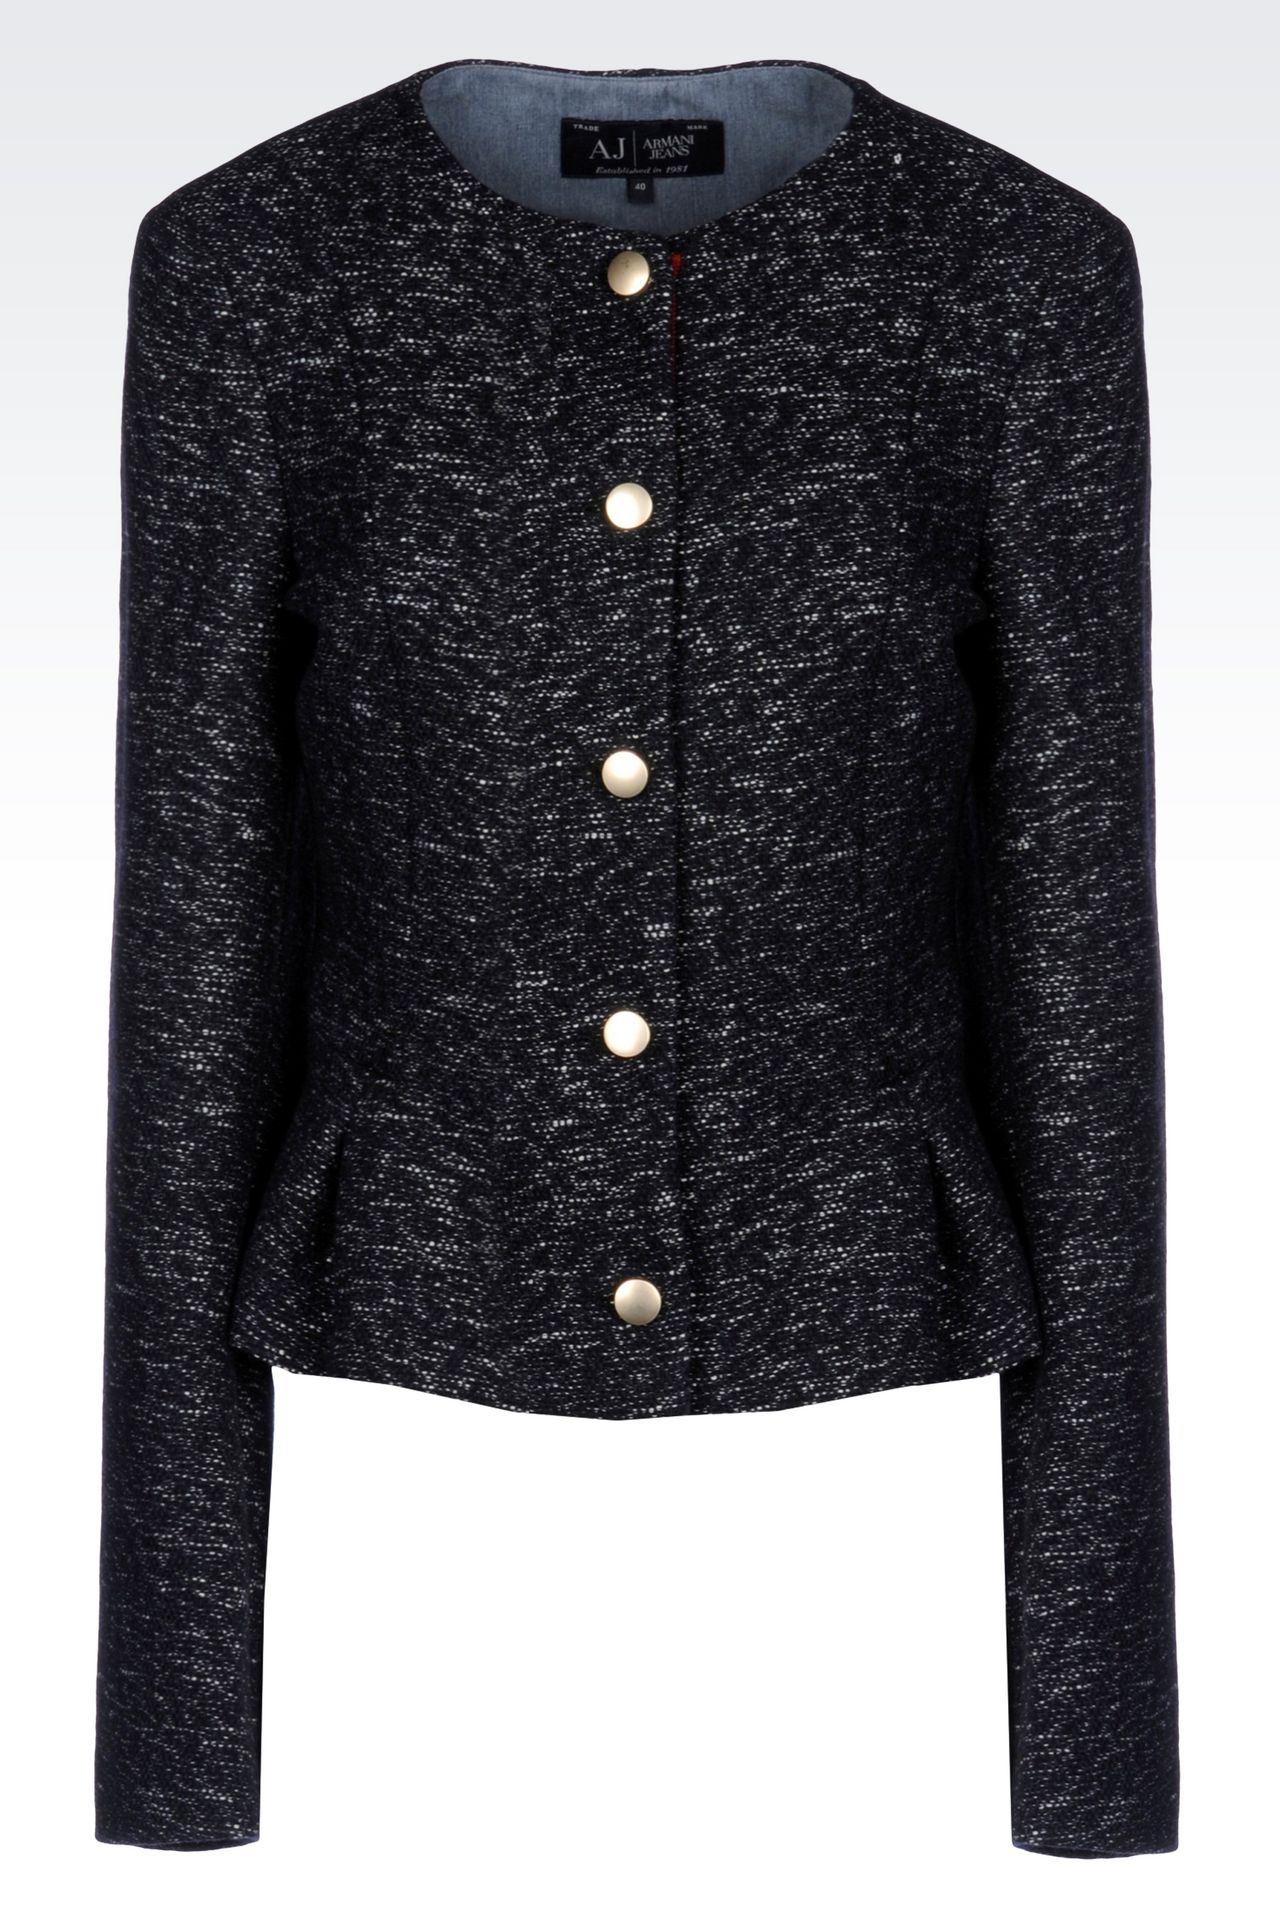 CREW NECK JACKET IN WOOL BLEND: Dinner jackets Women by Armani - 0